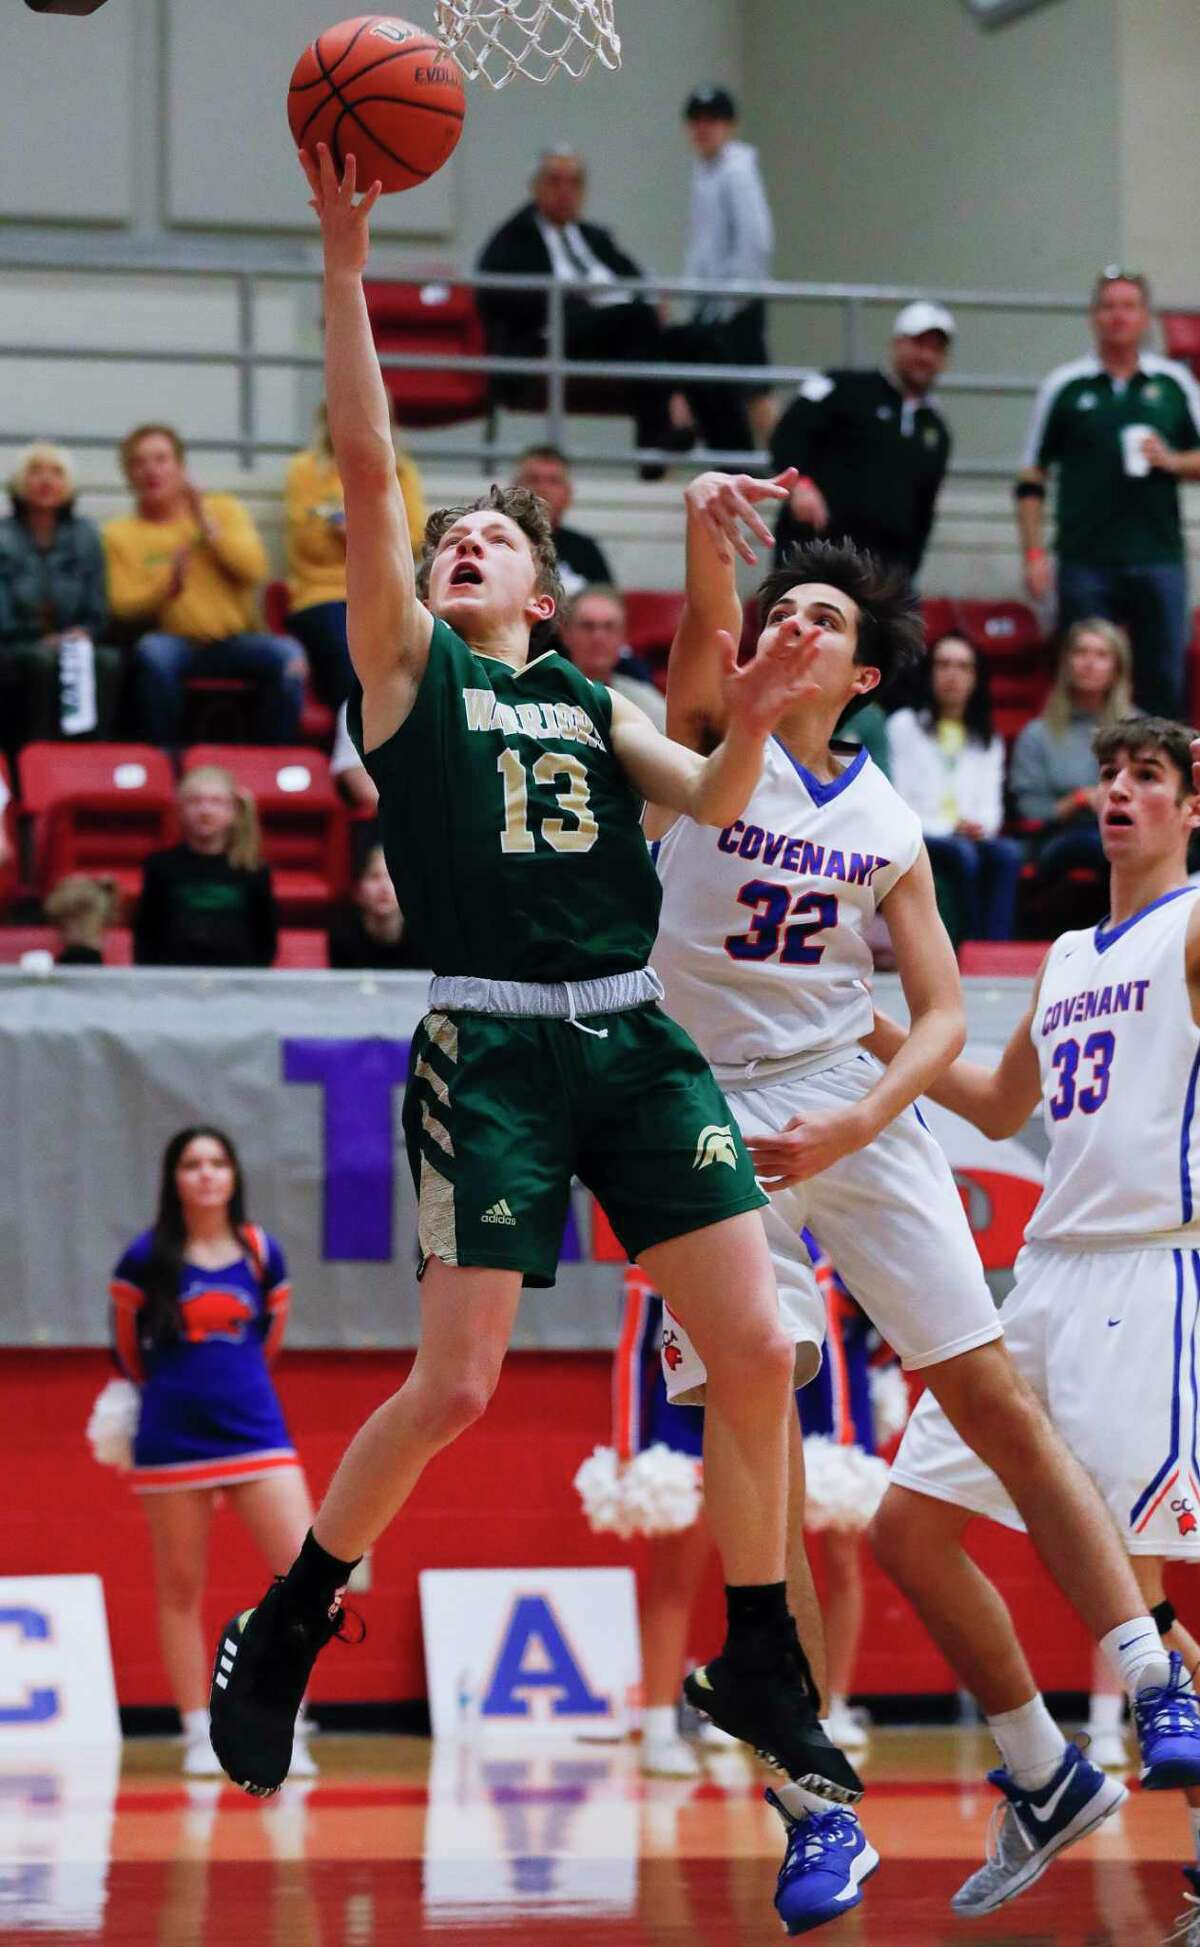 The Woodlands Christian Academy point guard Austin Benigni (13) shoots a layup during the third quarter of the TAPPS Class 4A high school basketball championship at West High School, Saturday, Feb. 29, 2020, in West.